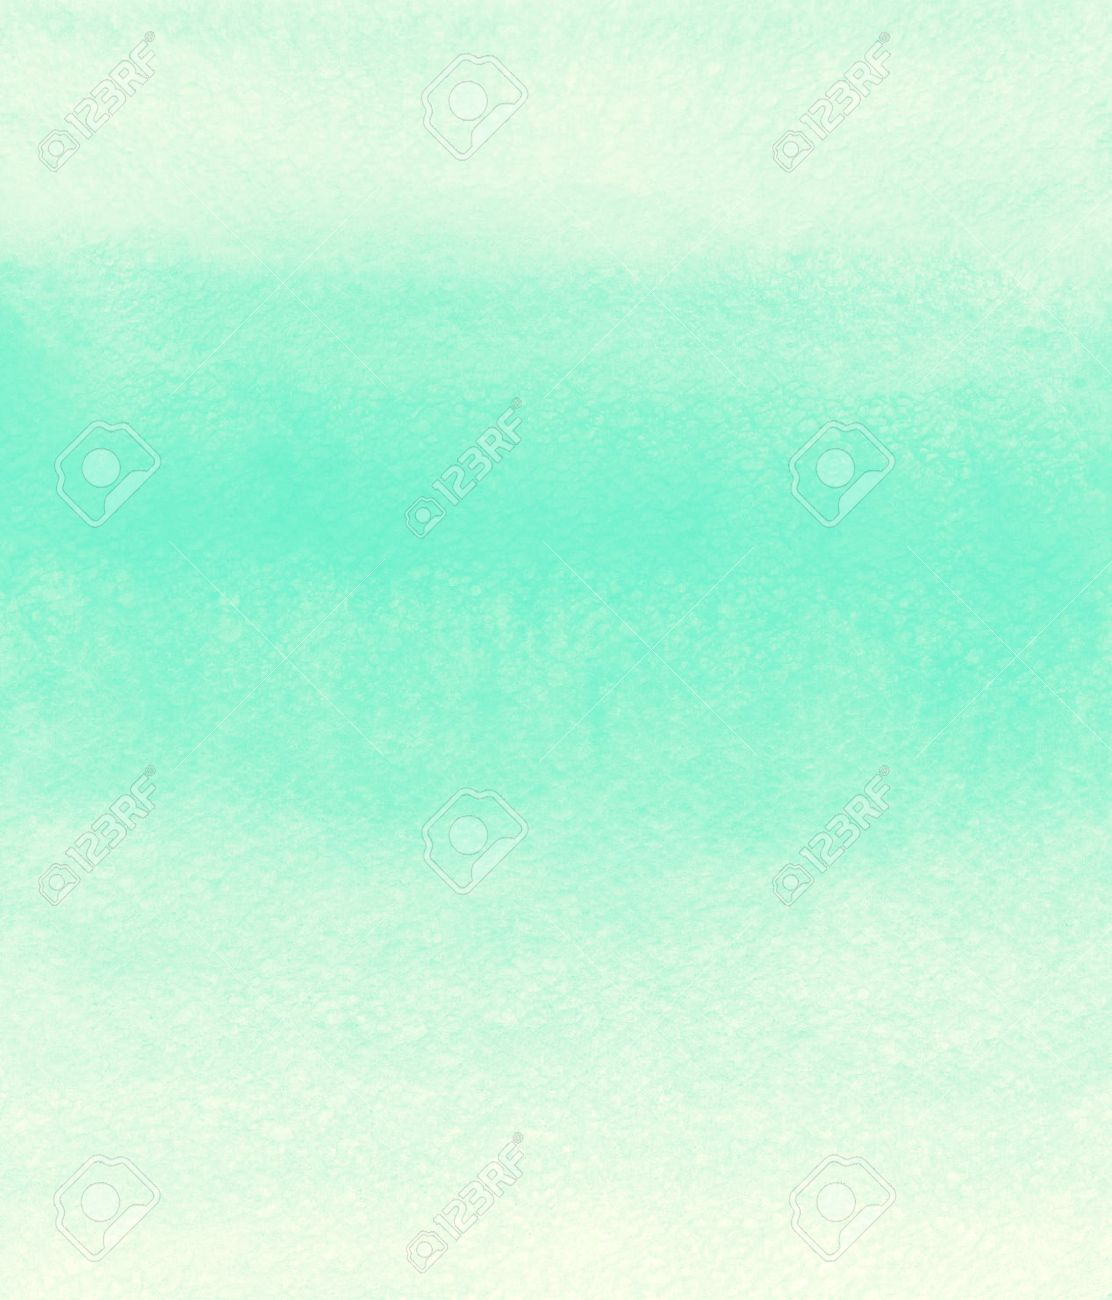 mint green striped watercolor background painted gradient template